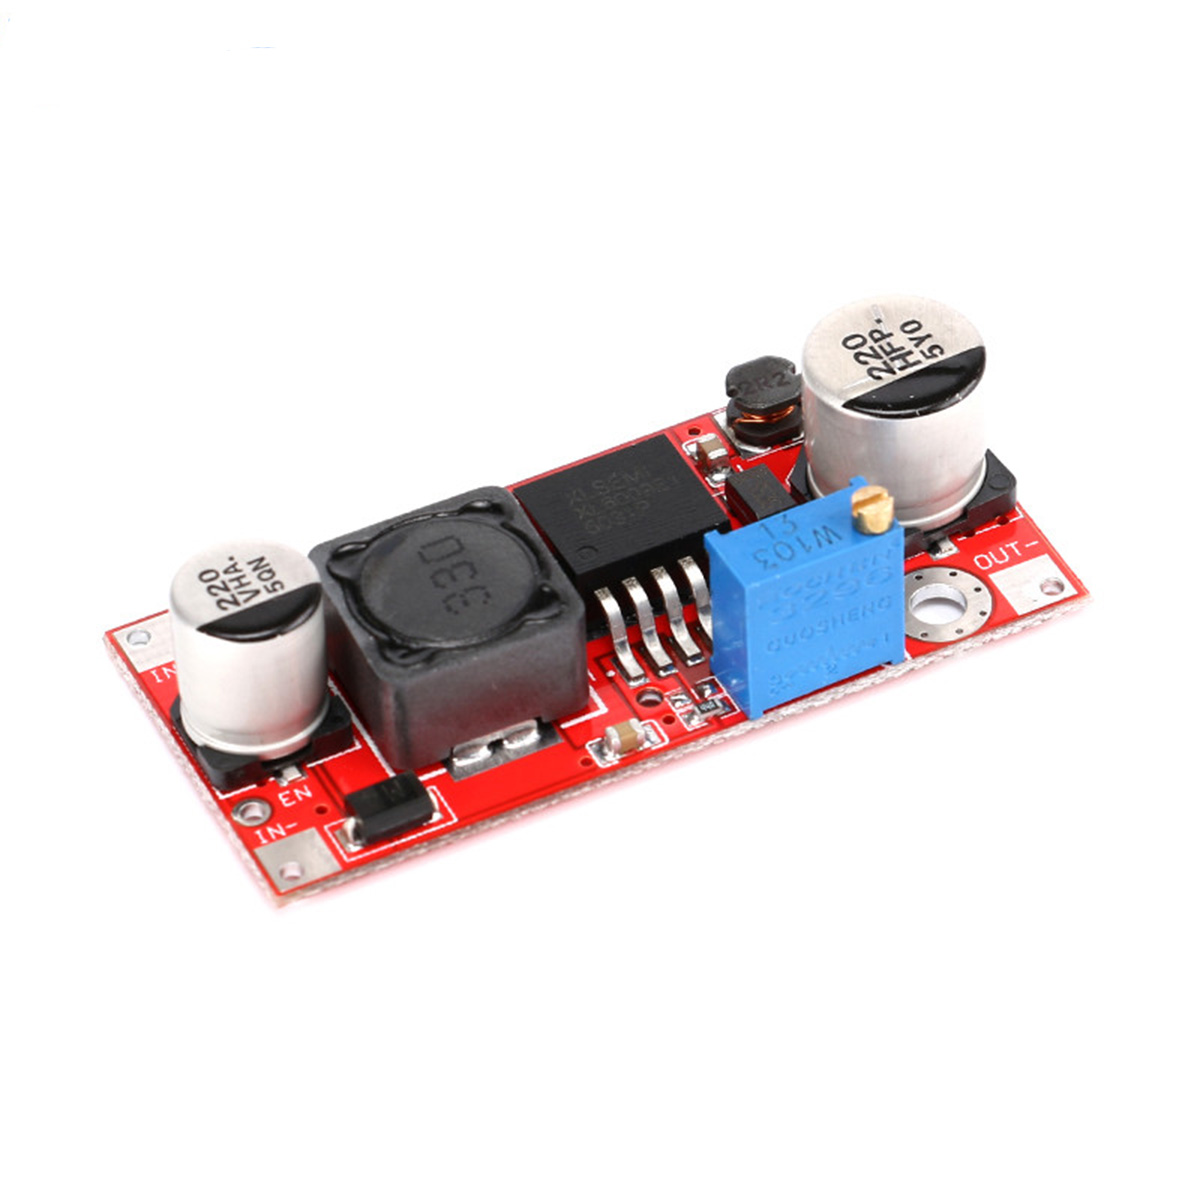 XL6009 DC-DC 5V to 48V Boost Step-Up Converter Power Supply Module